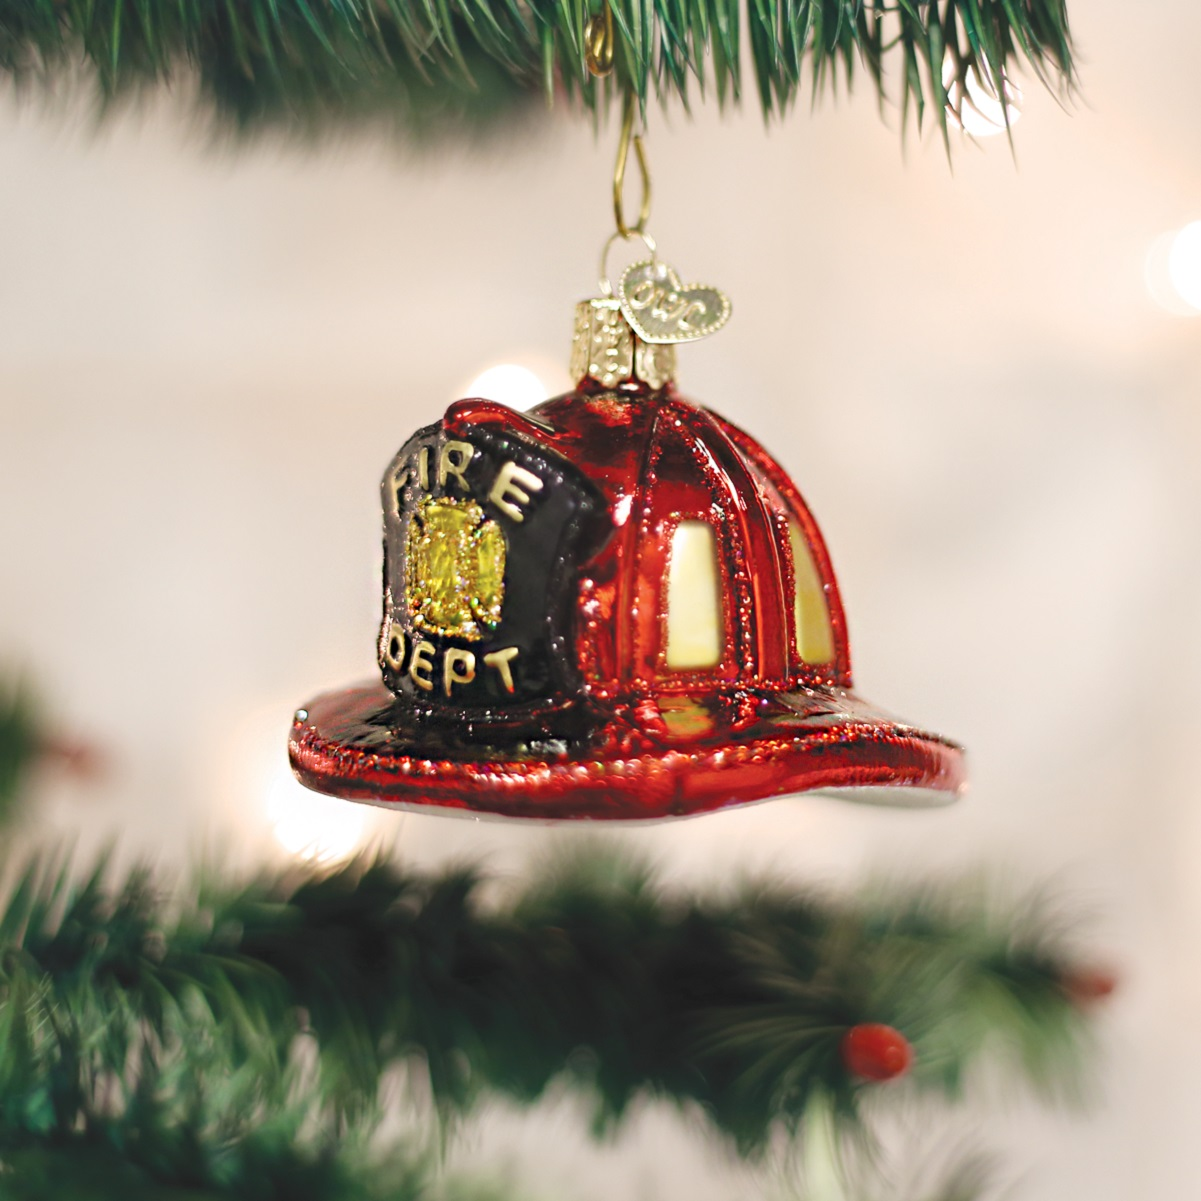 Old World Christmas Firemans Helmet Glass Tree Ornament 32225 FREE BOX New